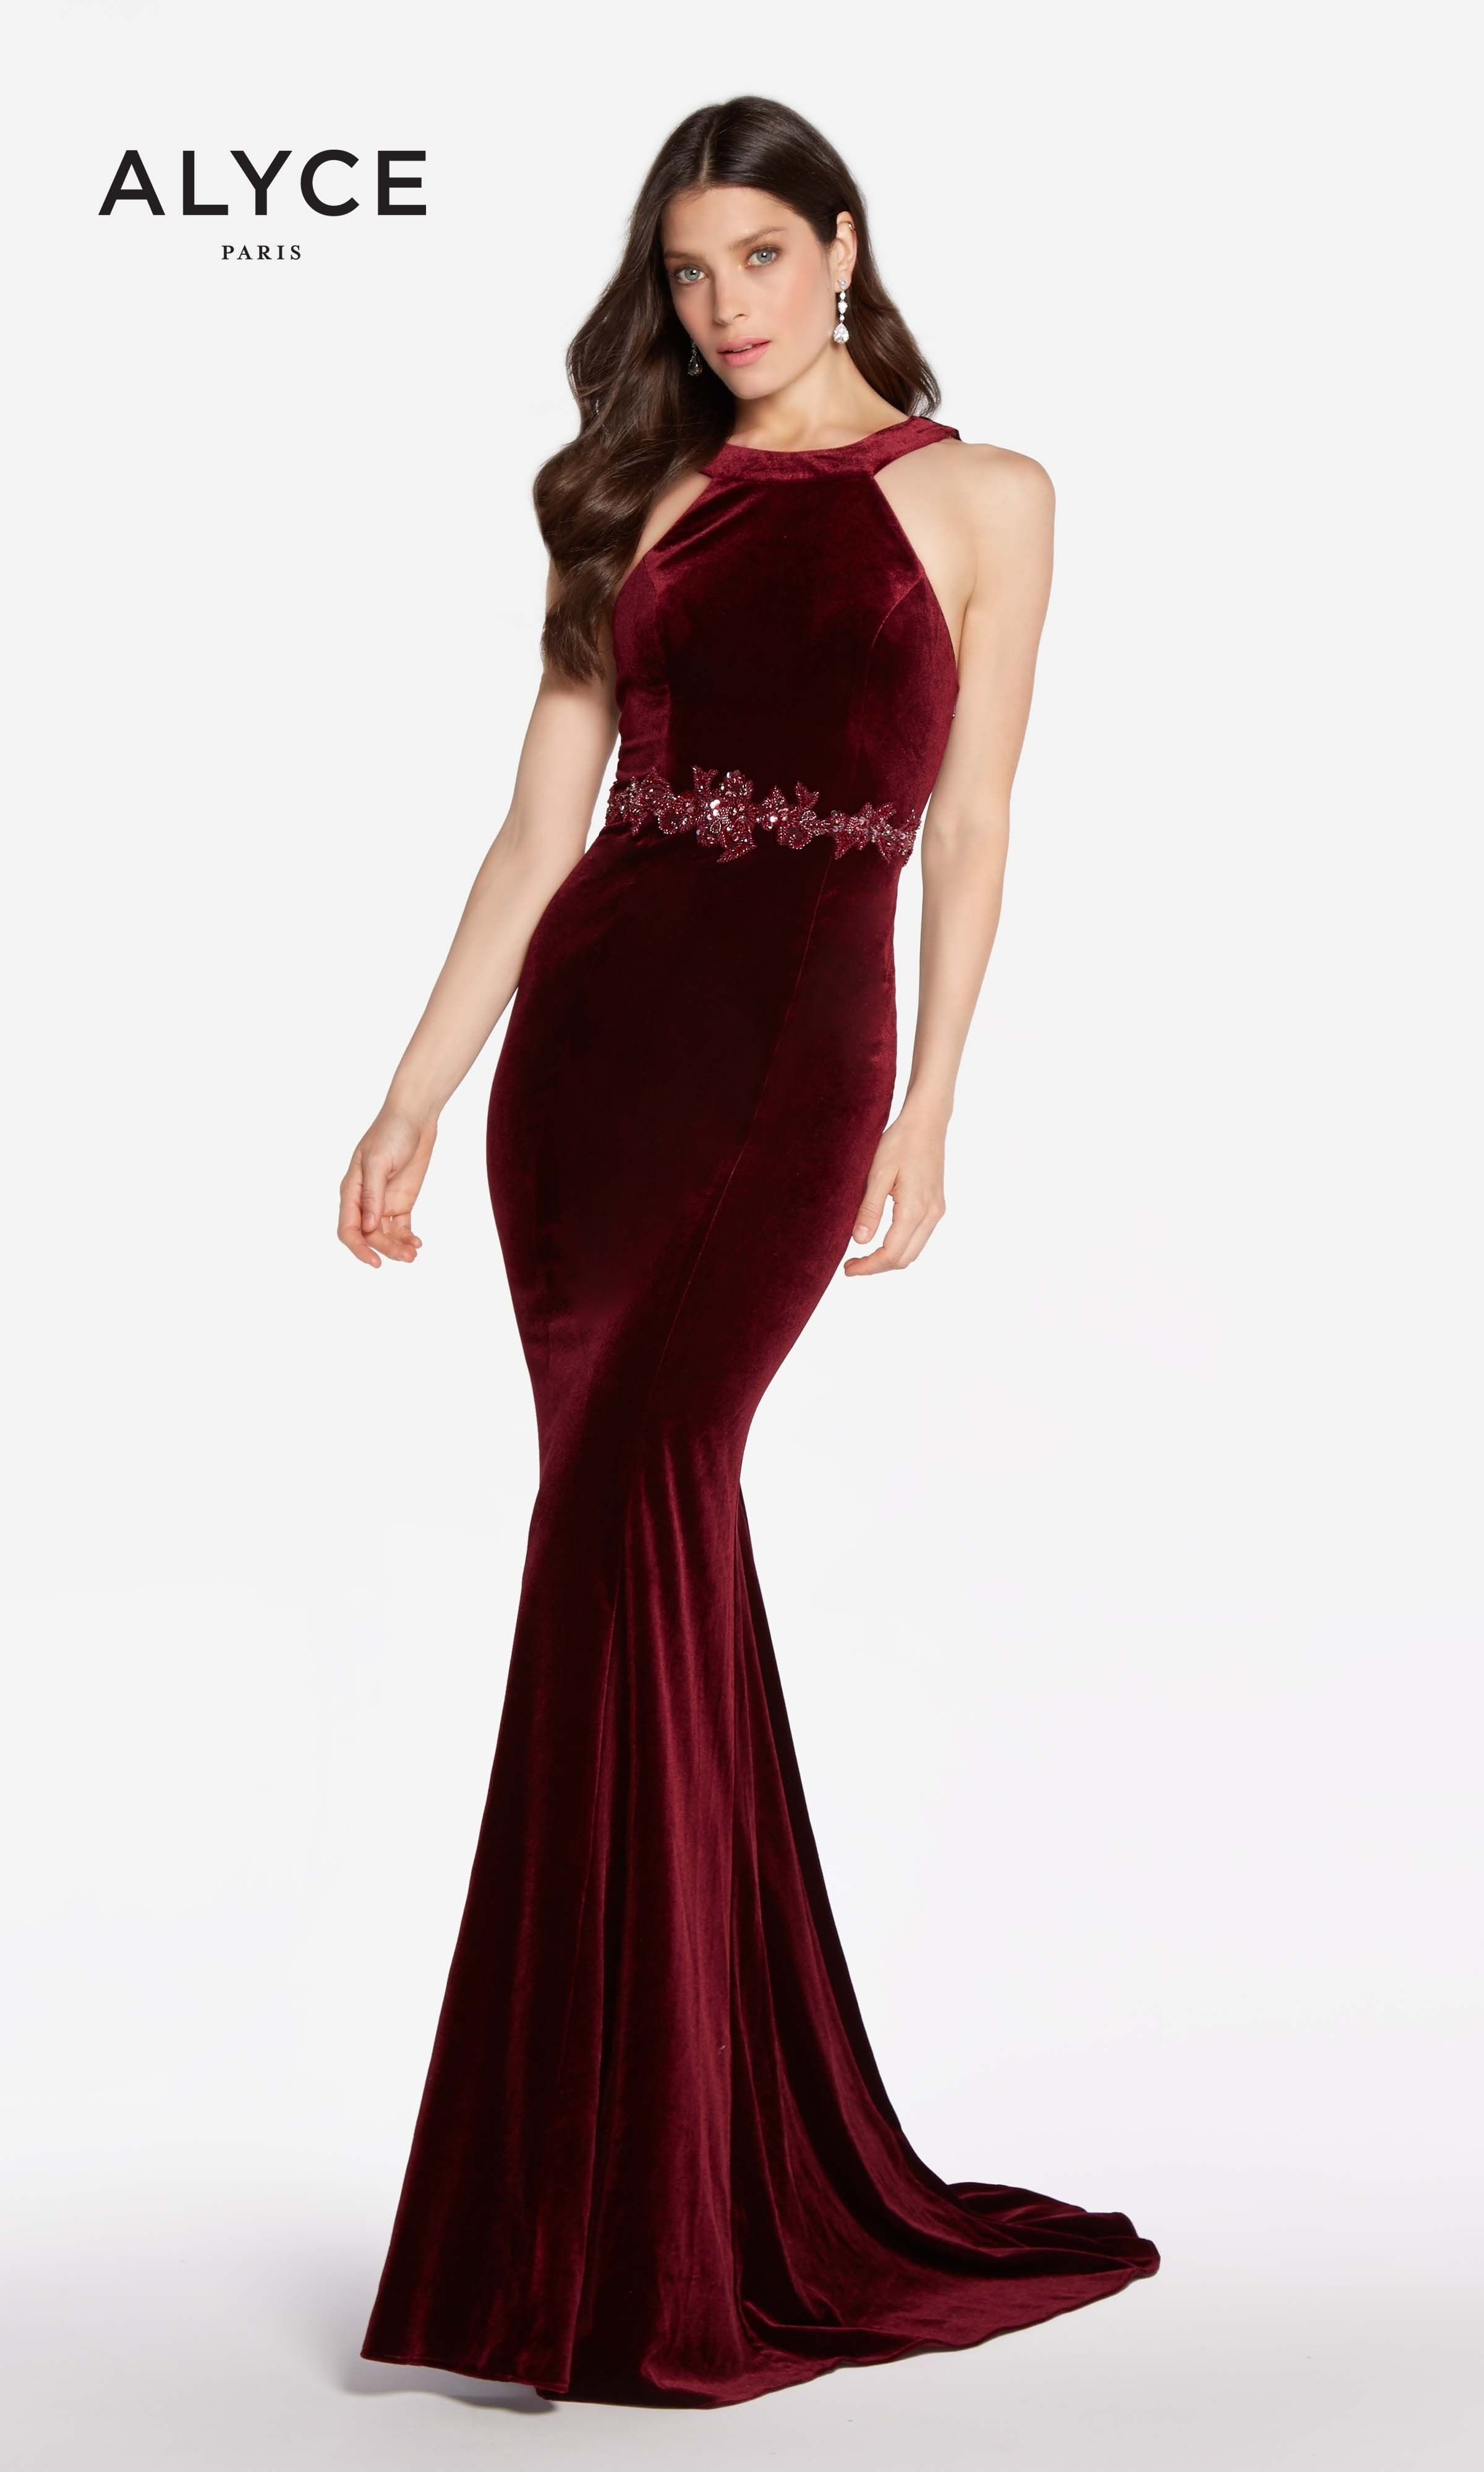 Tuck Up Your Pin Curls For Alyce 60072 This Old Hollywood Glam Velvet Dress Features A Alyce Paris Prom Dresses Formal Dresses Gowns Formal Dresses For Women [ 3998 x 2400 Pixel ]